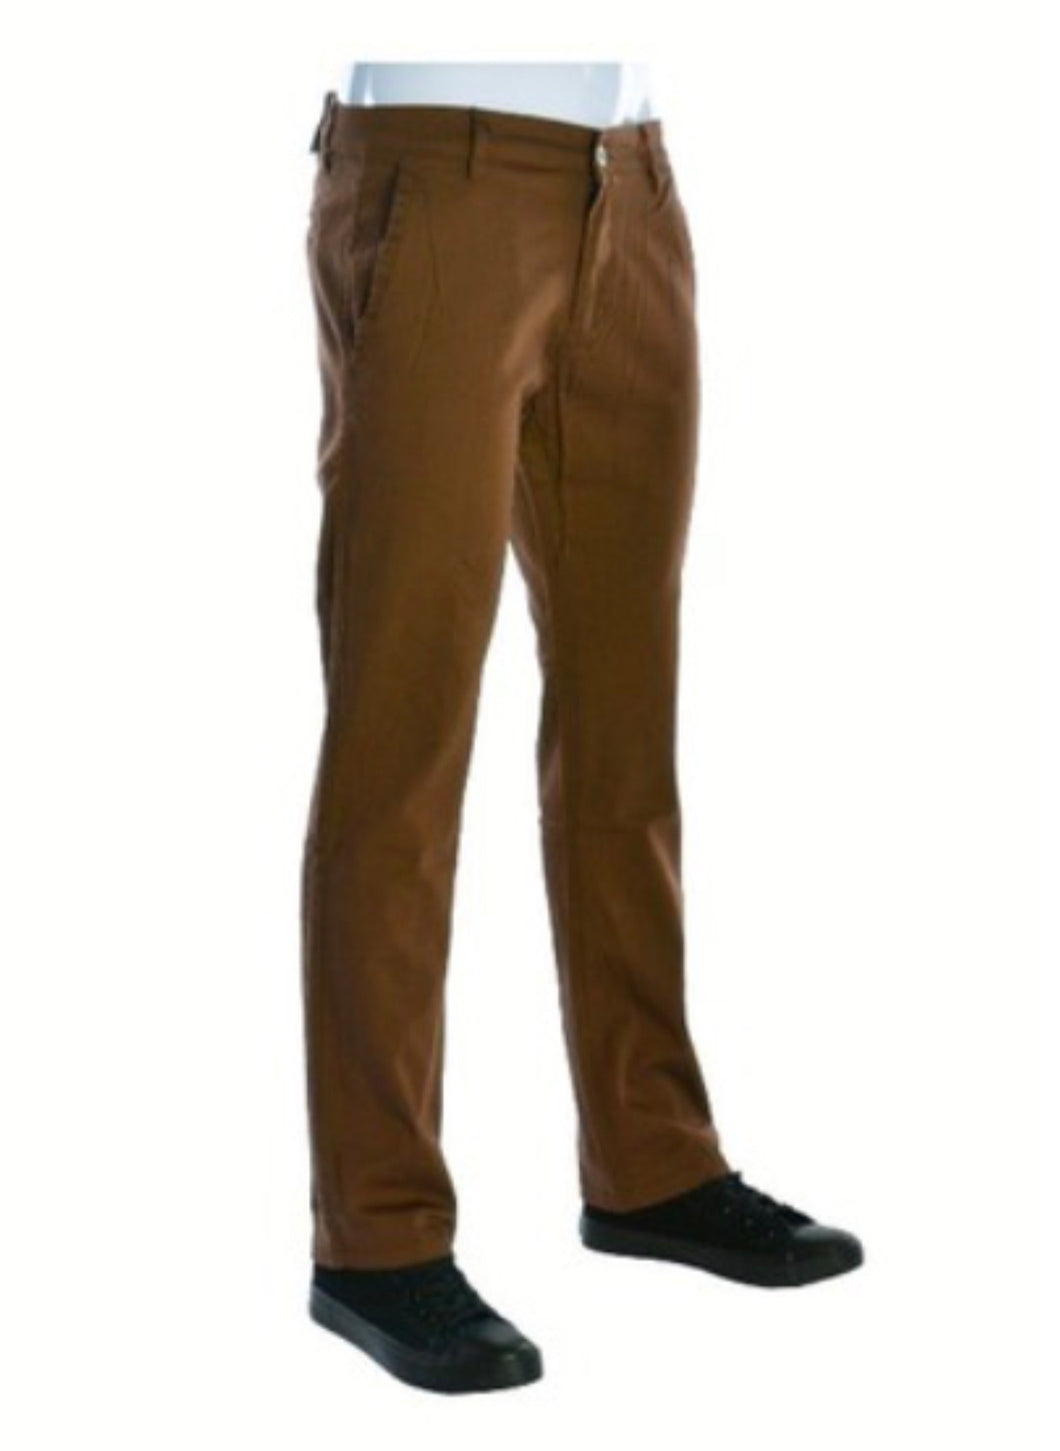 Men's Tobacco Dress Pants